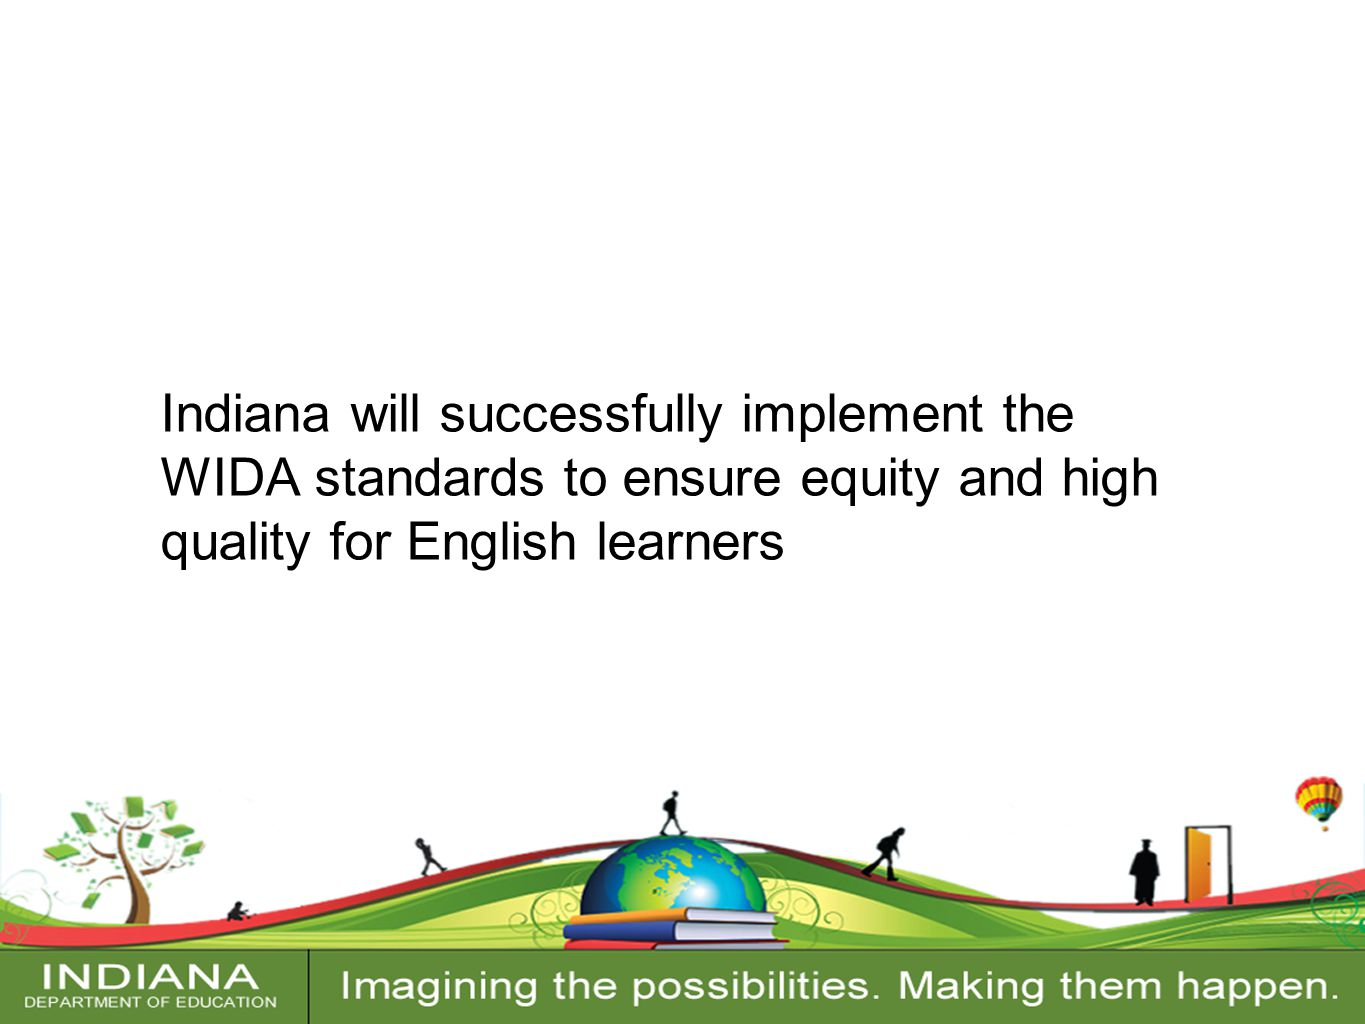 Contact Information Indiana will successfully implement the WIDA standards to ensure equity and high quality for English learners